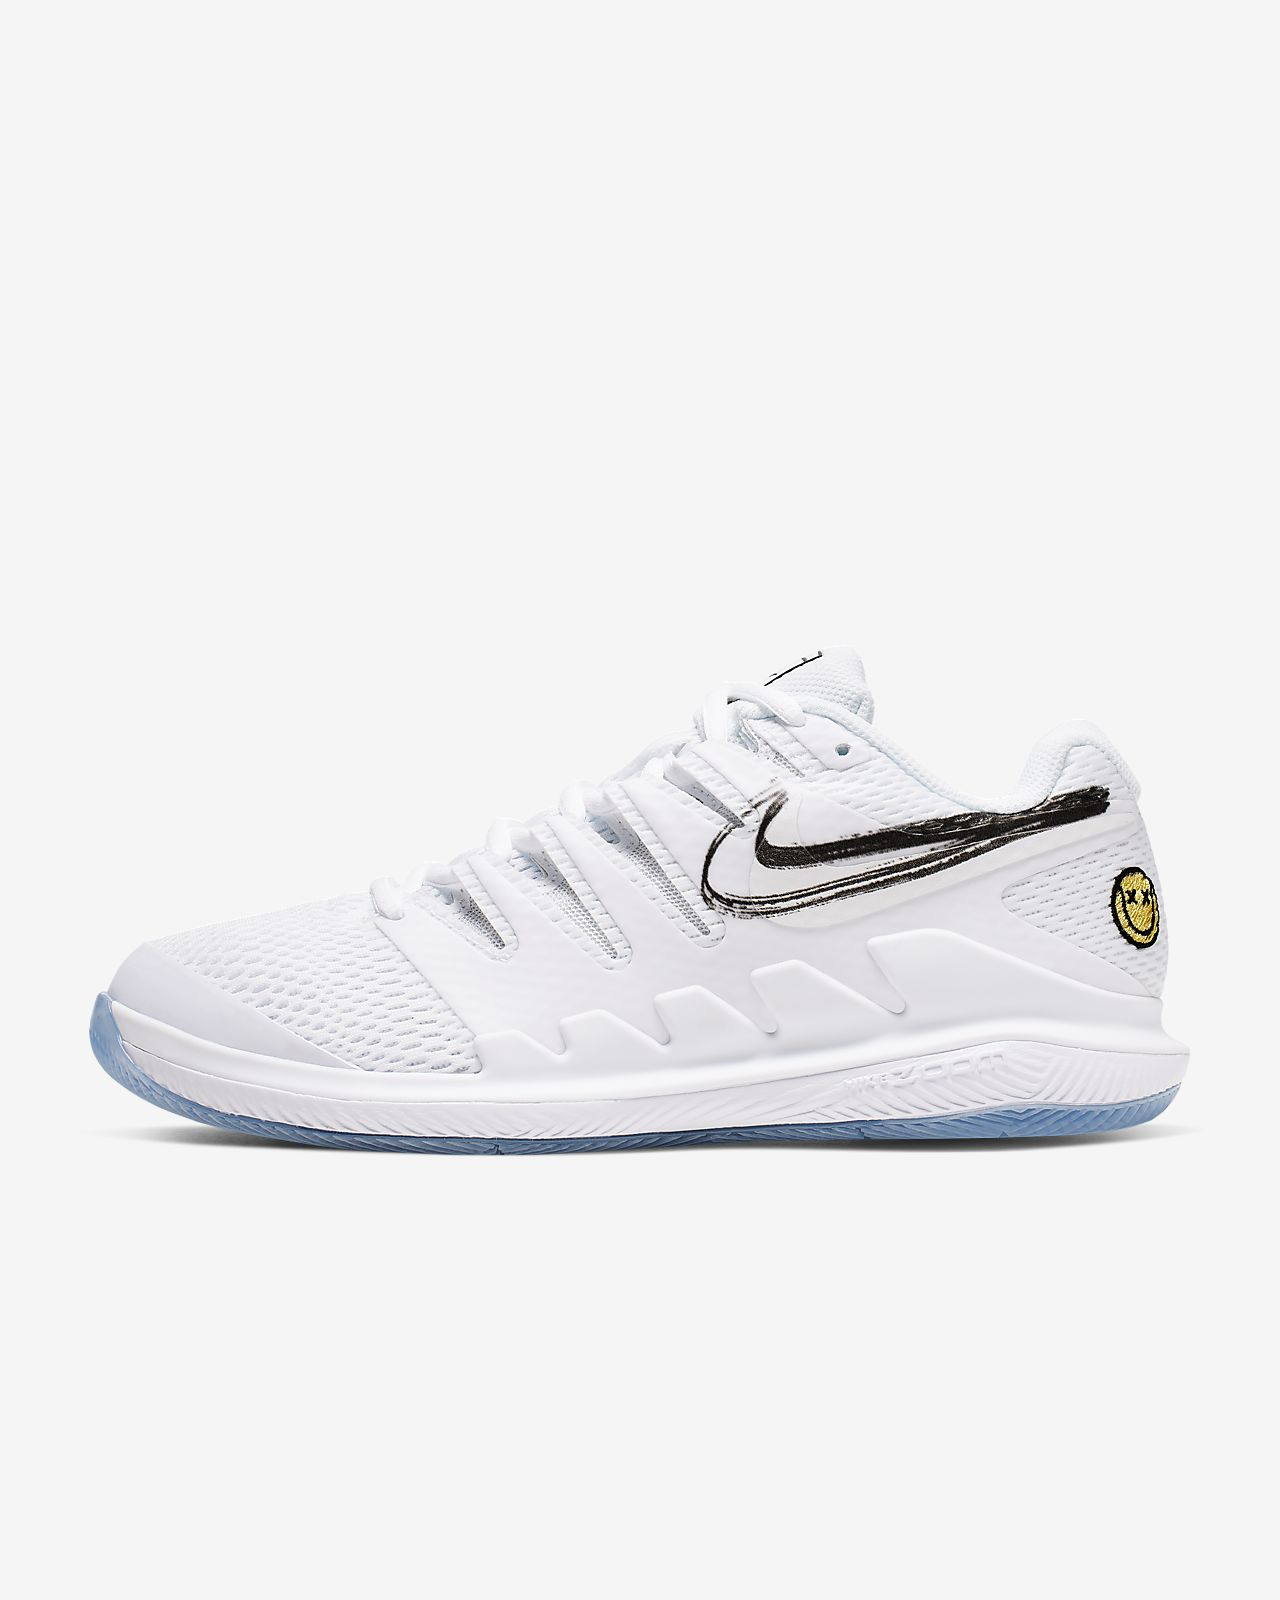 Damskie buty do tenisa na twarde korty NikeCourt Air Zoom Vapor X